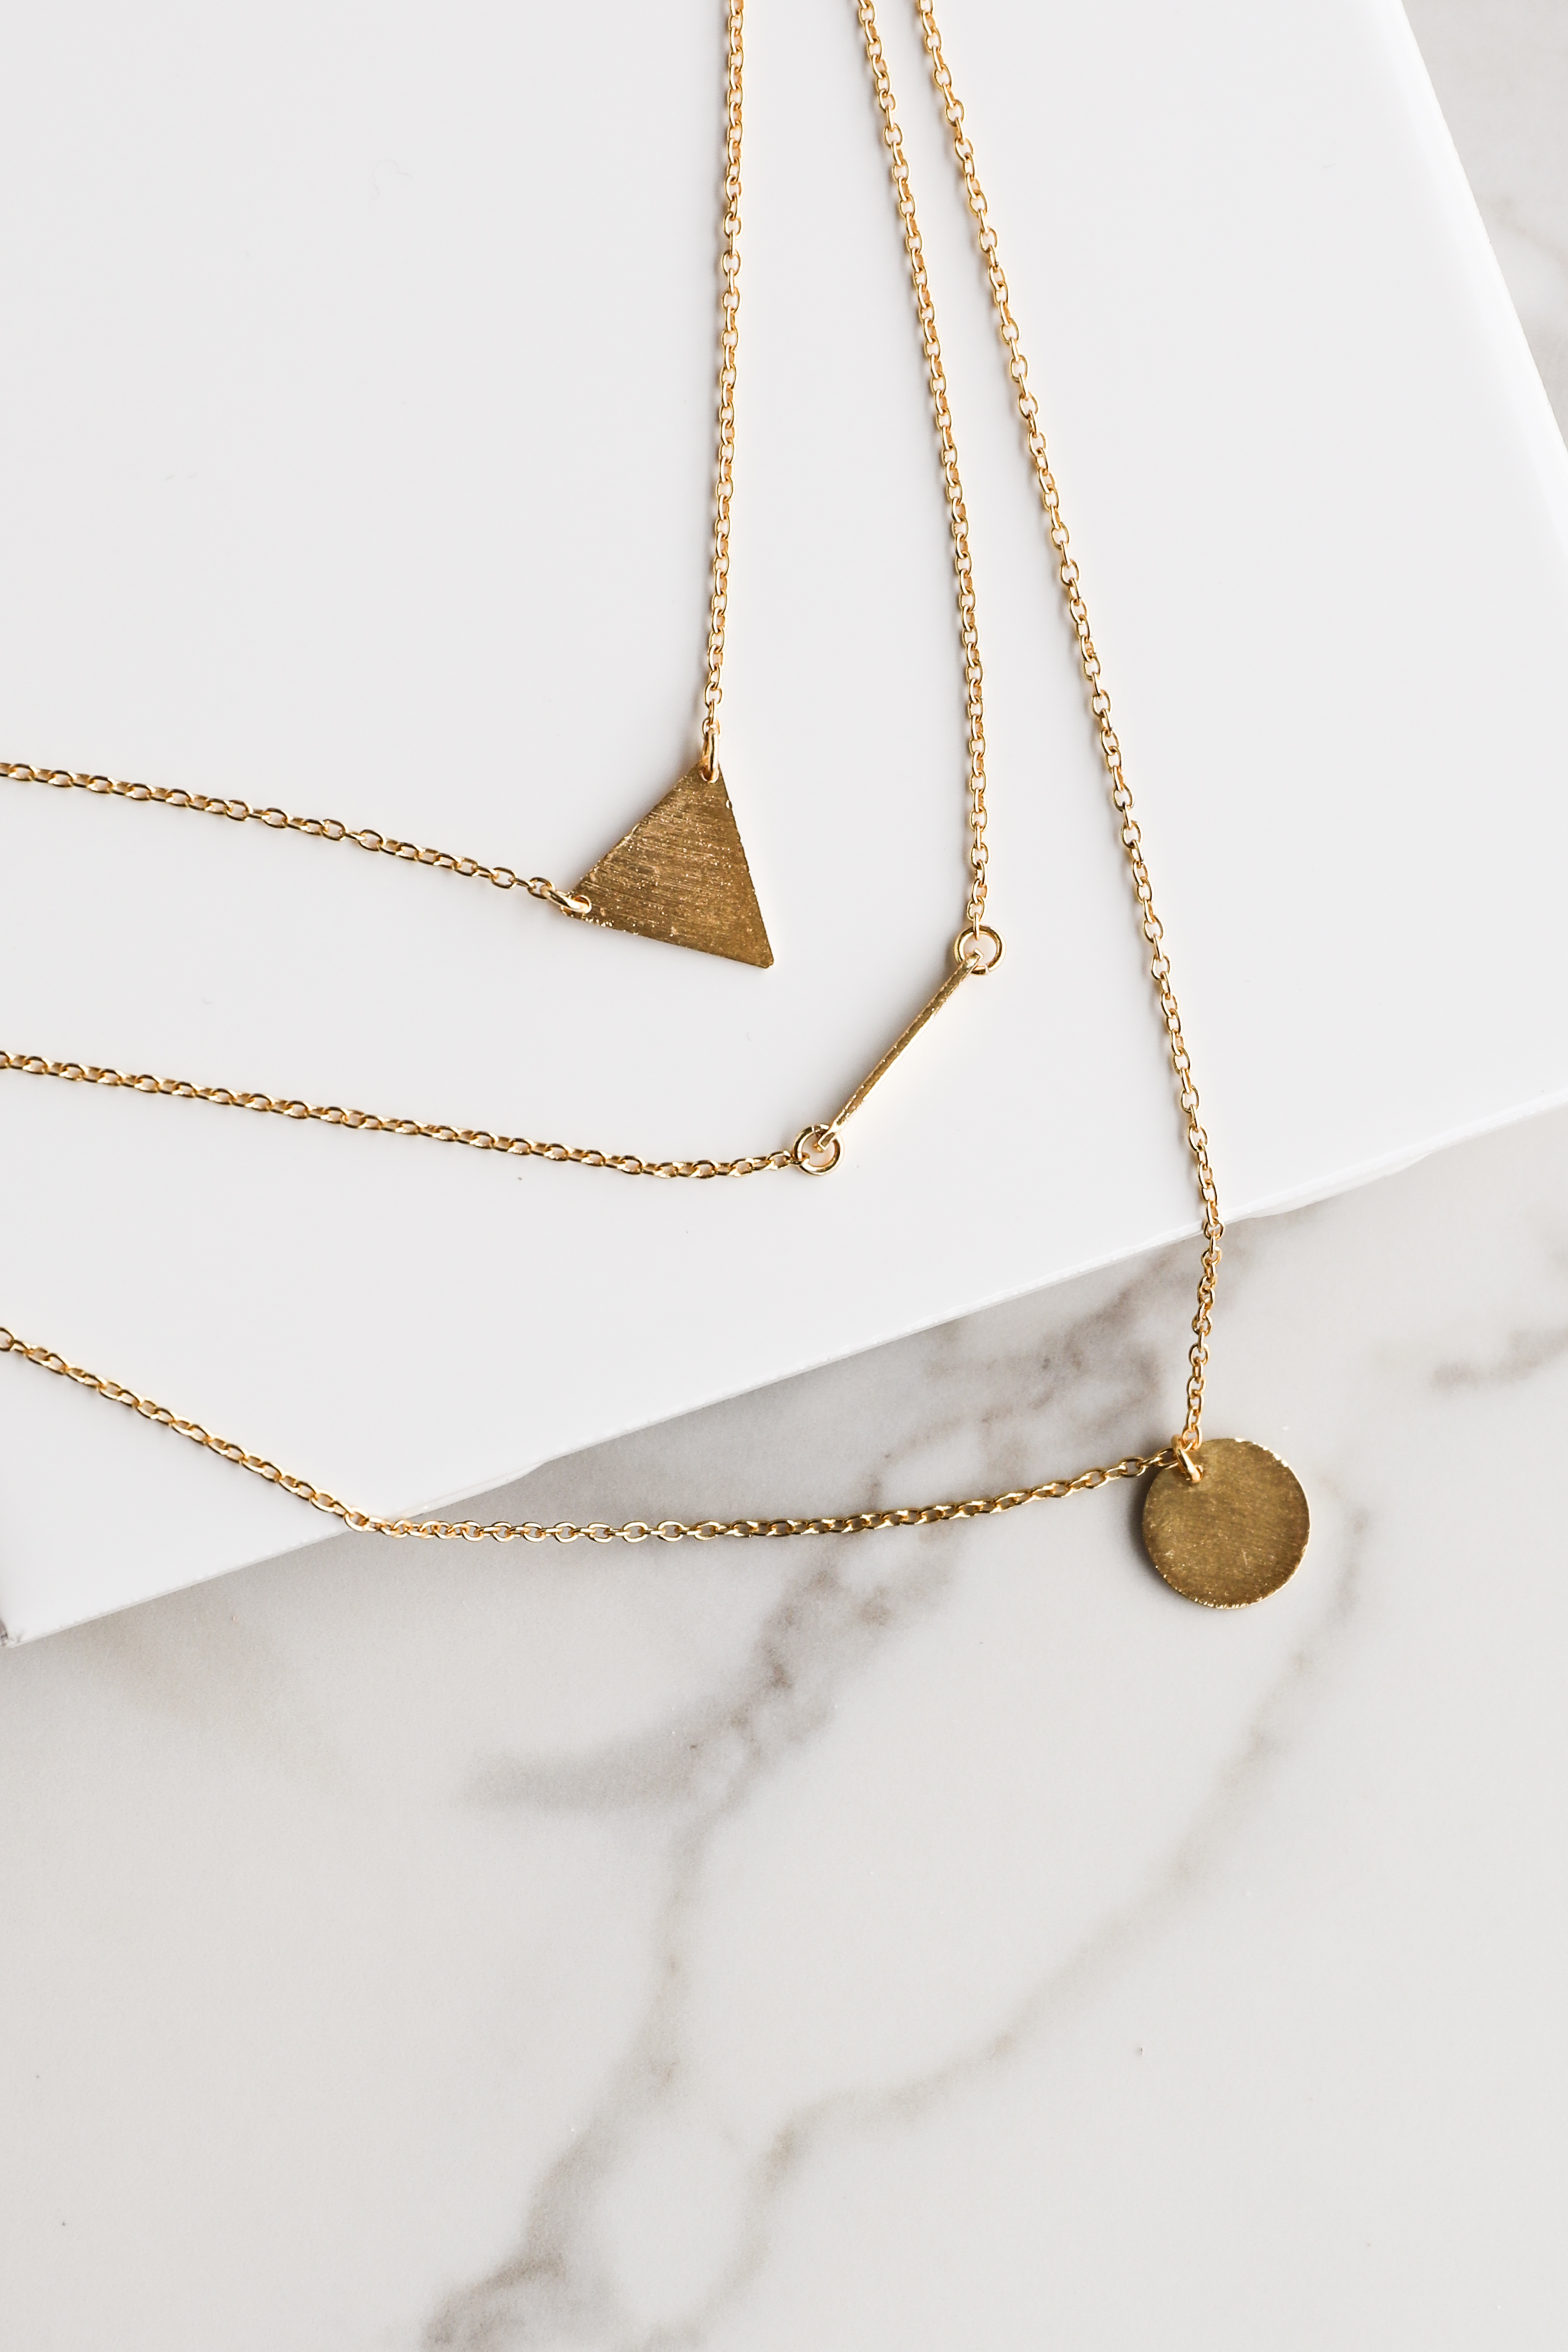 Gold Layered Necklace with Geometric Pendants